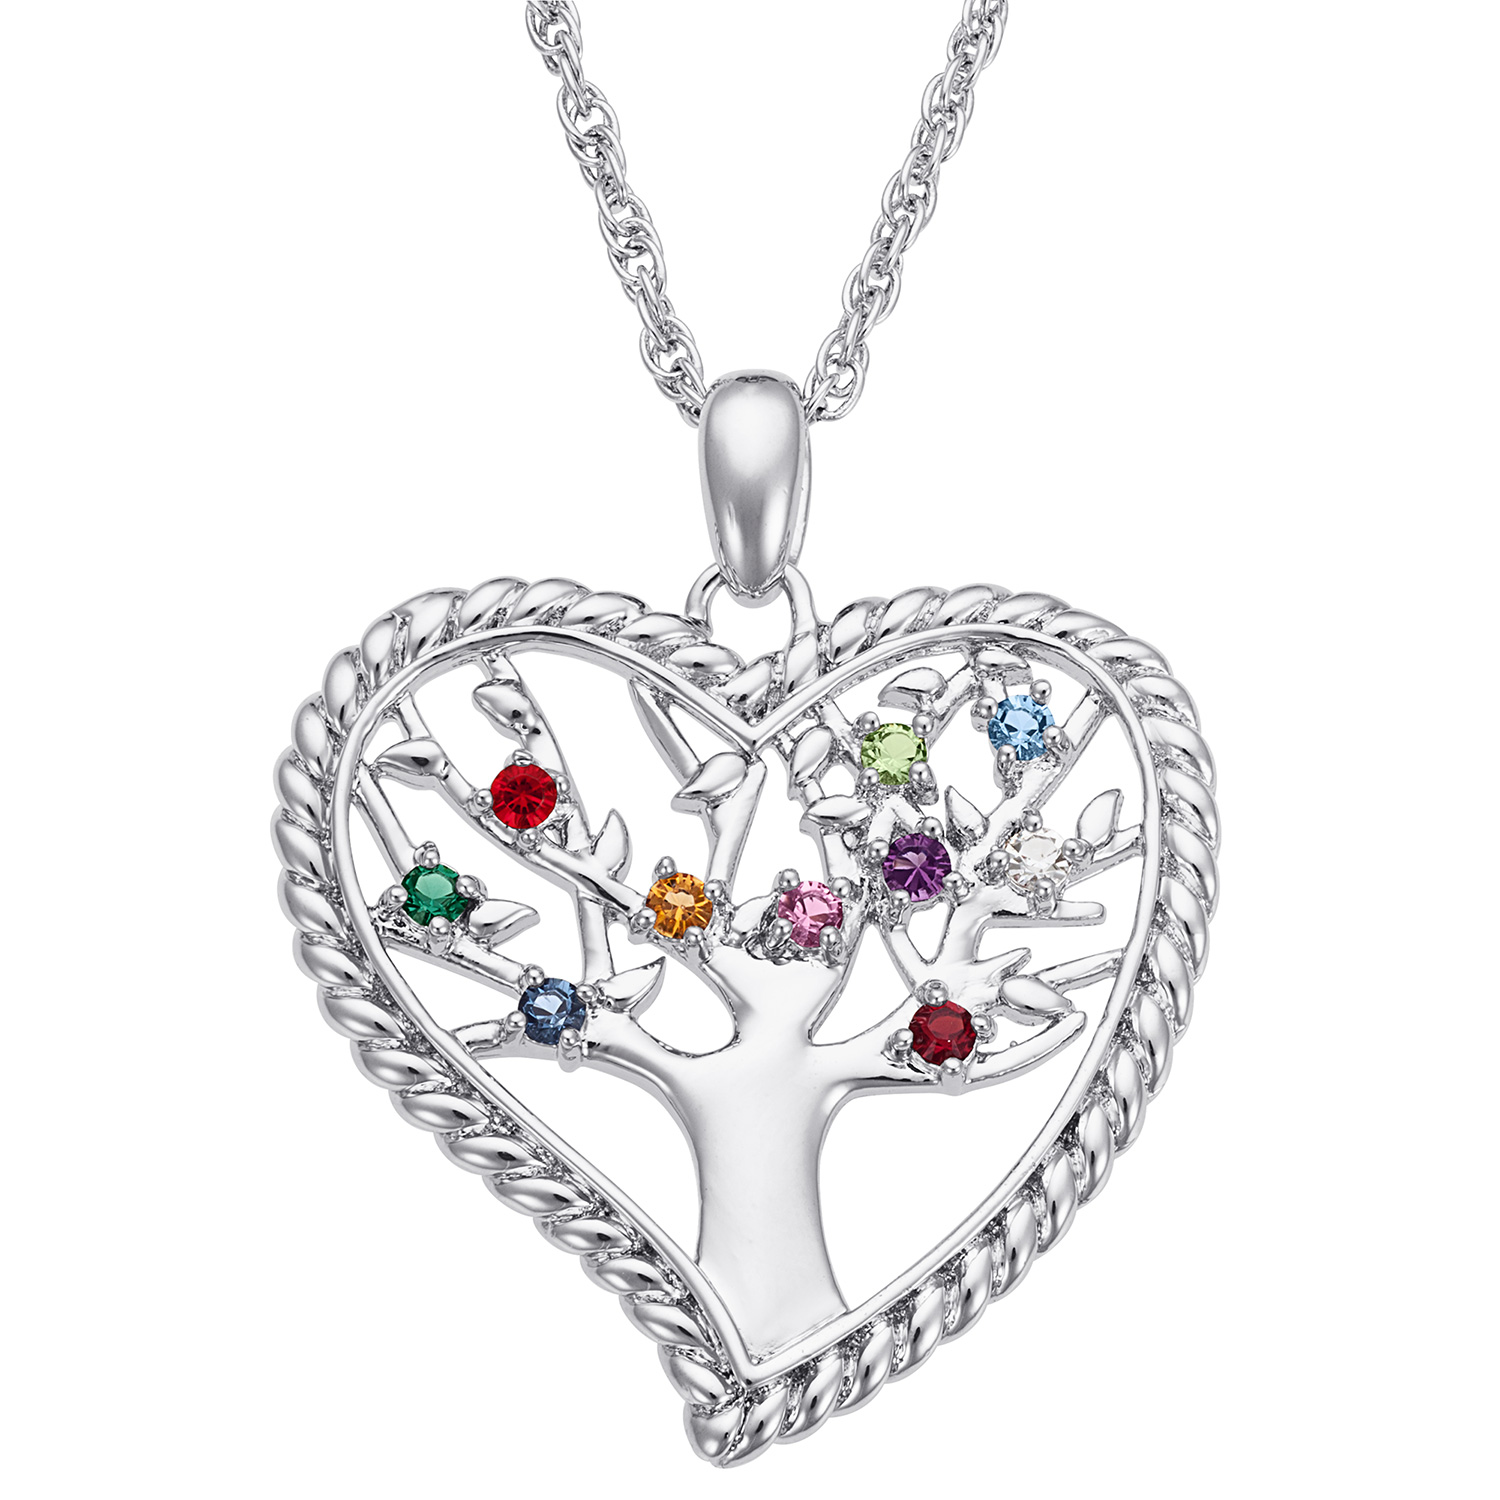 Personalized Women's Silvertone or Goldtone Family Heart Birthstone Tree Pendant, 20""